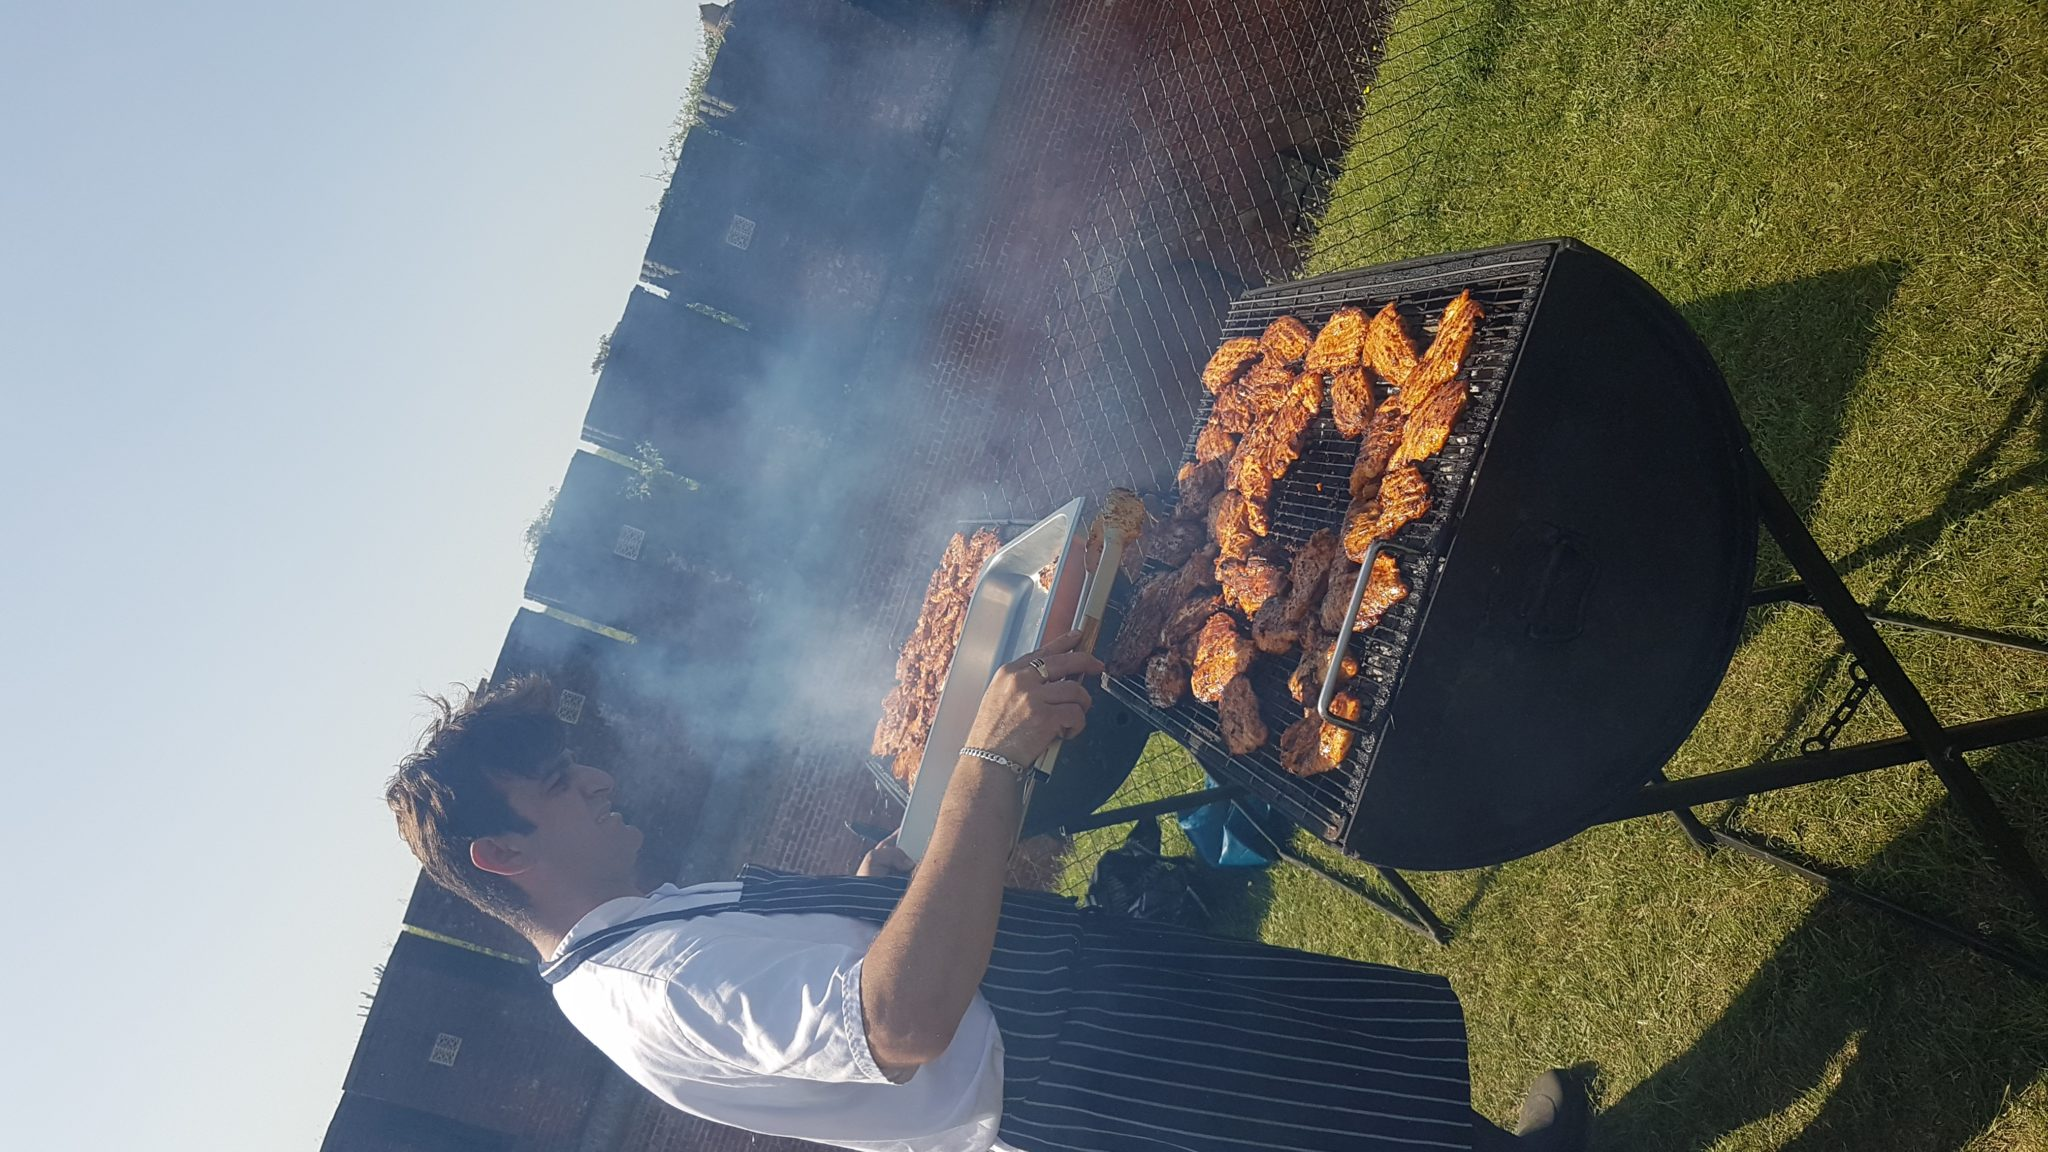 GRILLING OUR SIGNATURE CHICKEN